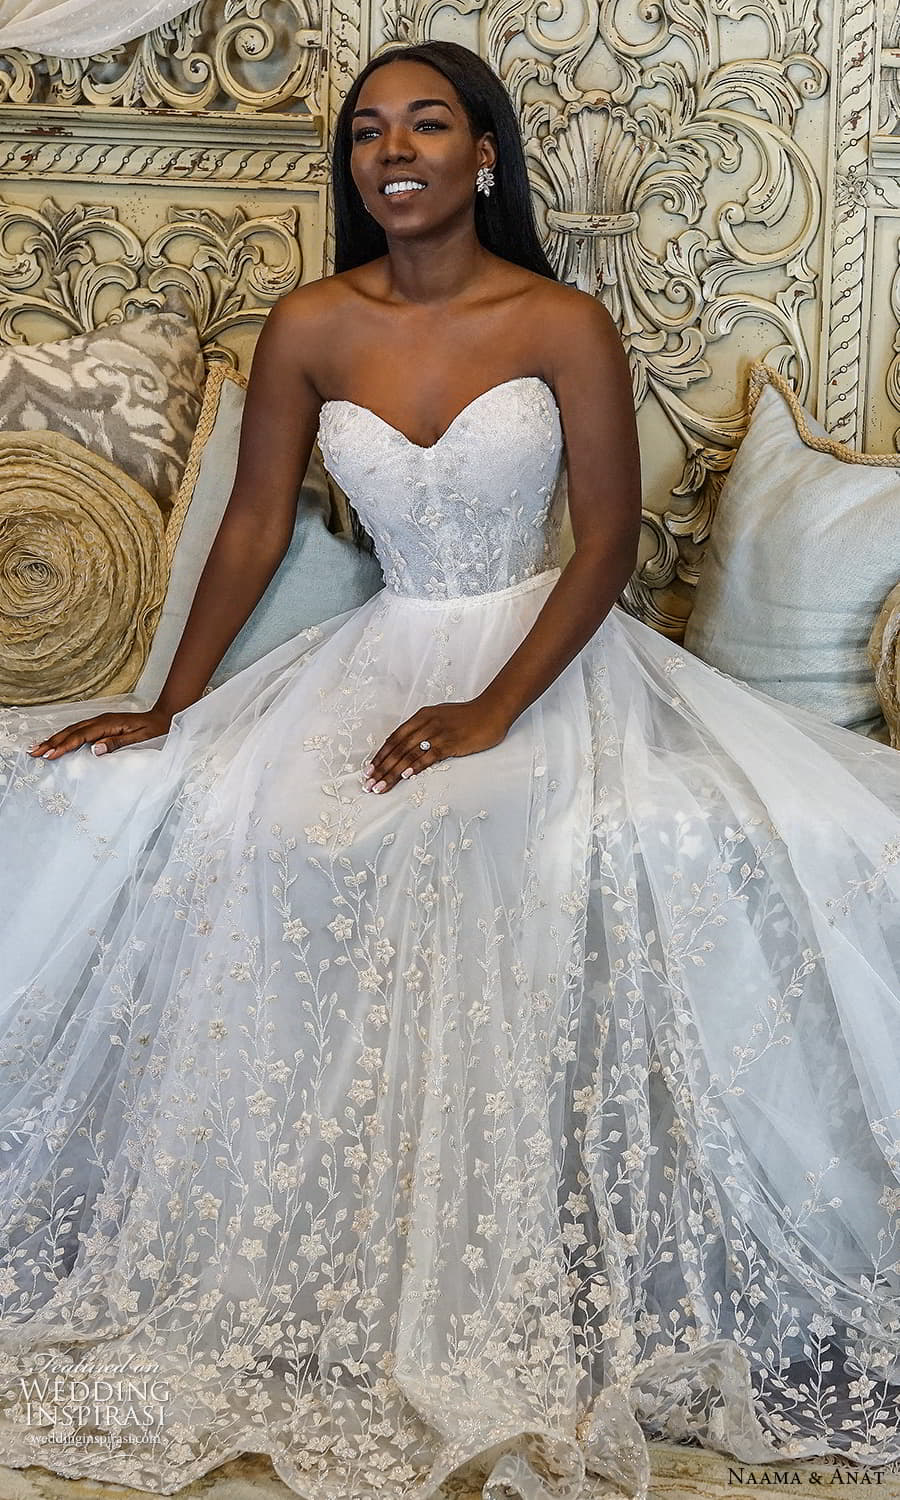 naama anat 2022 bridal straples sweetheart neckline fully embellished a line ball gown wedding dress (3) zv